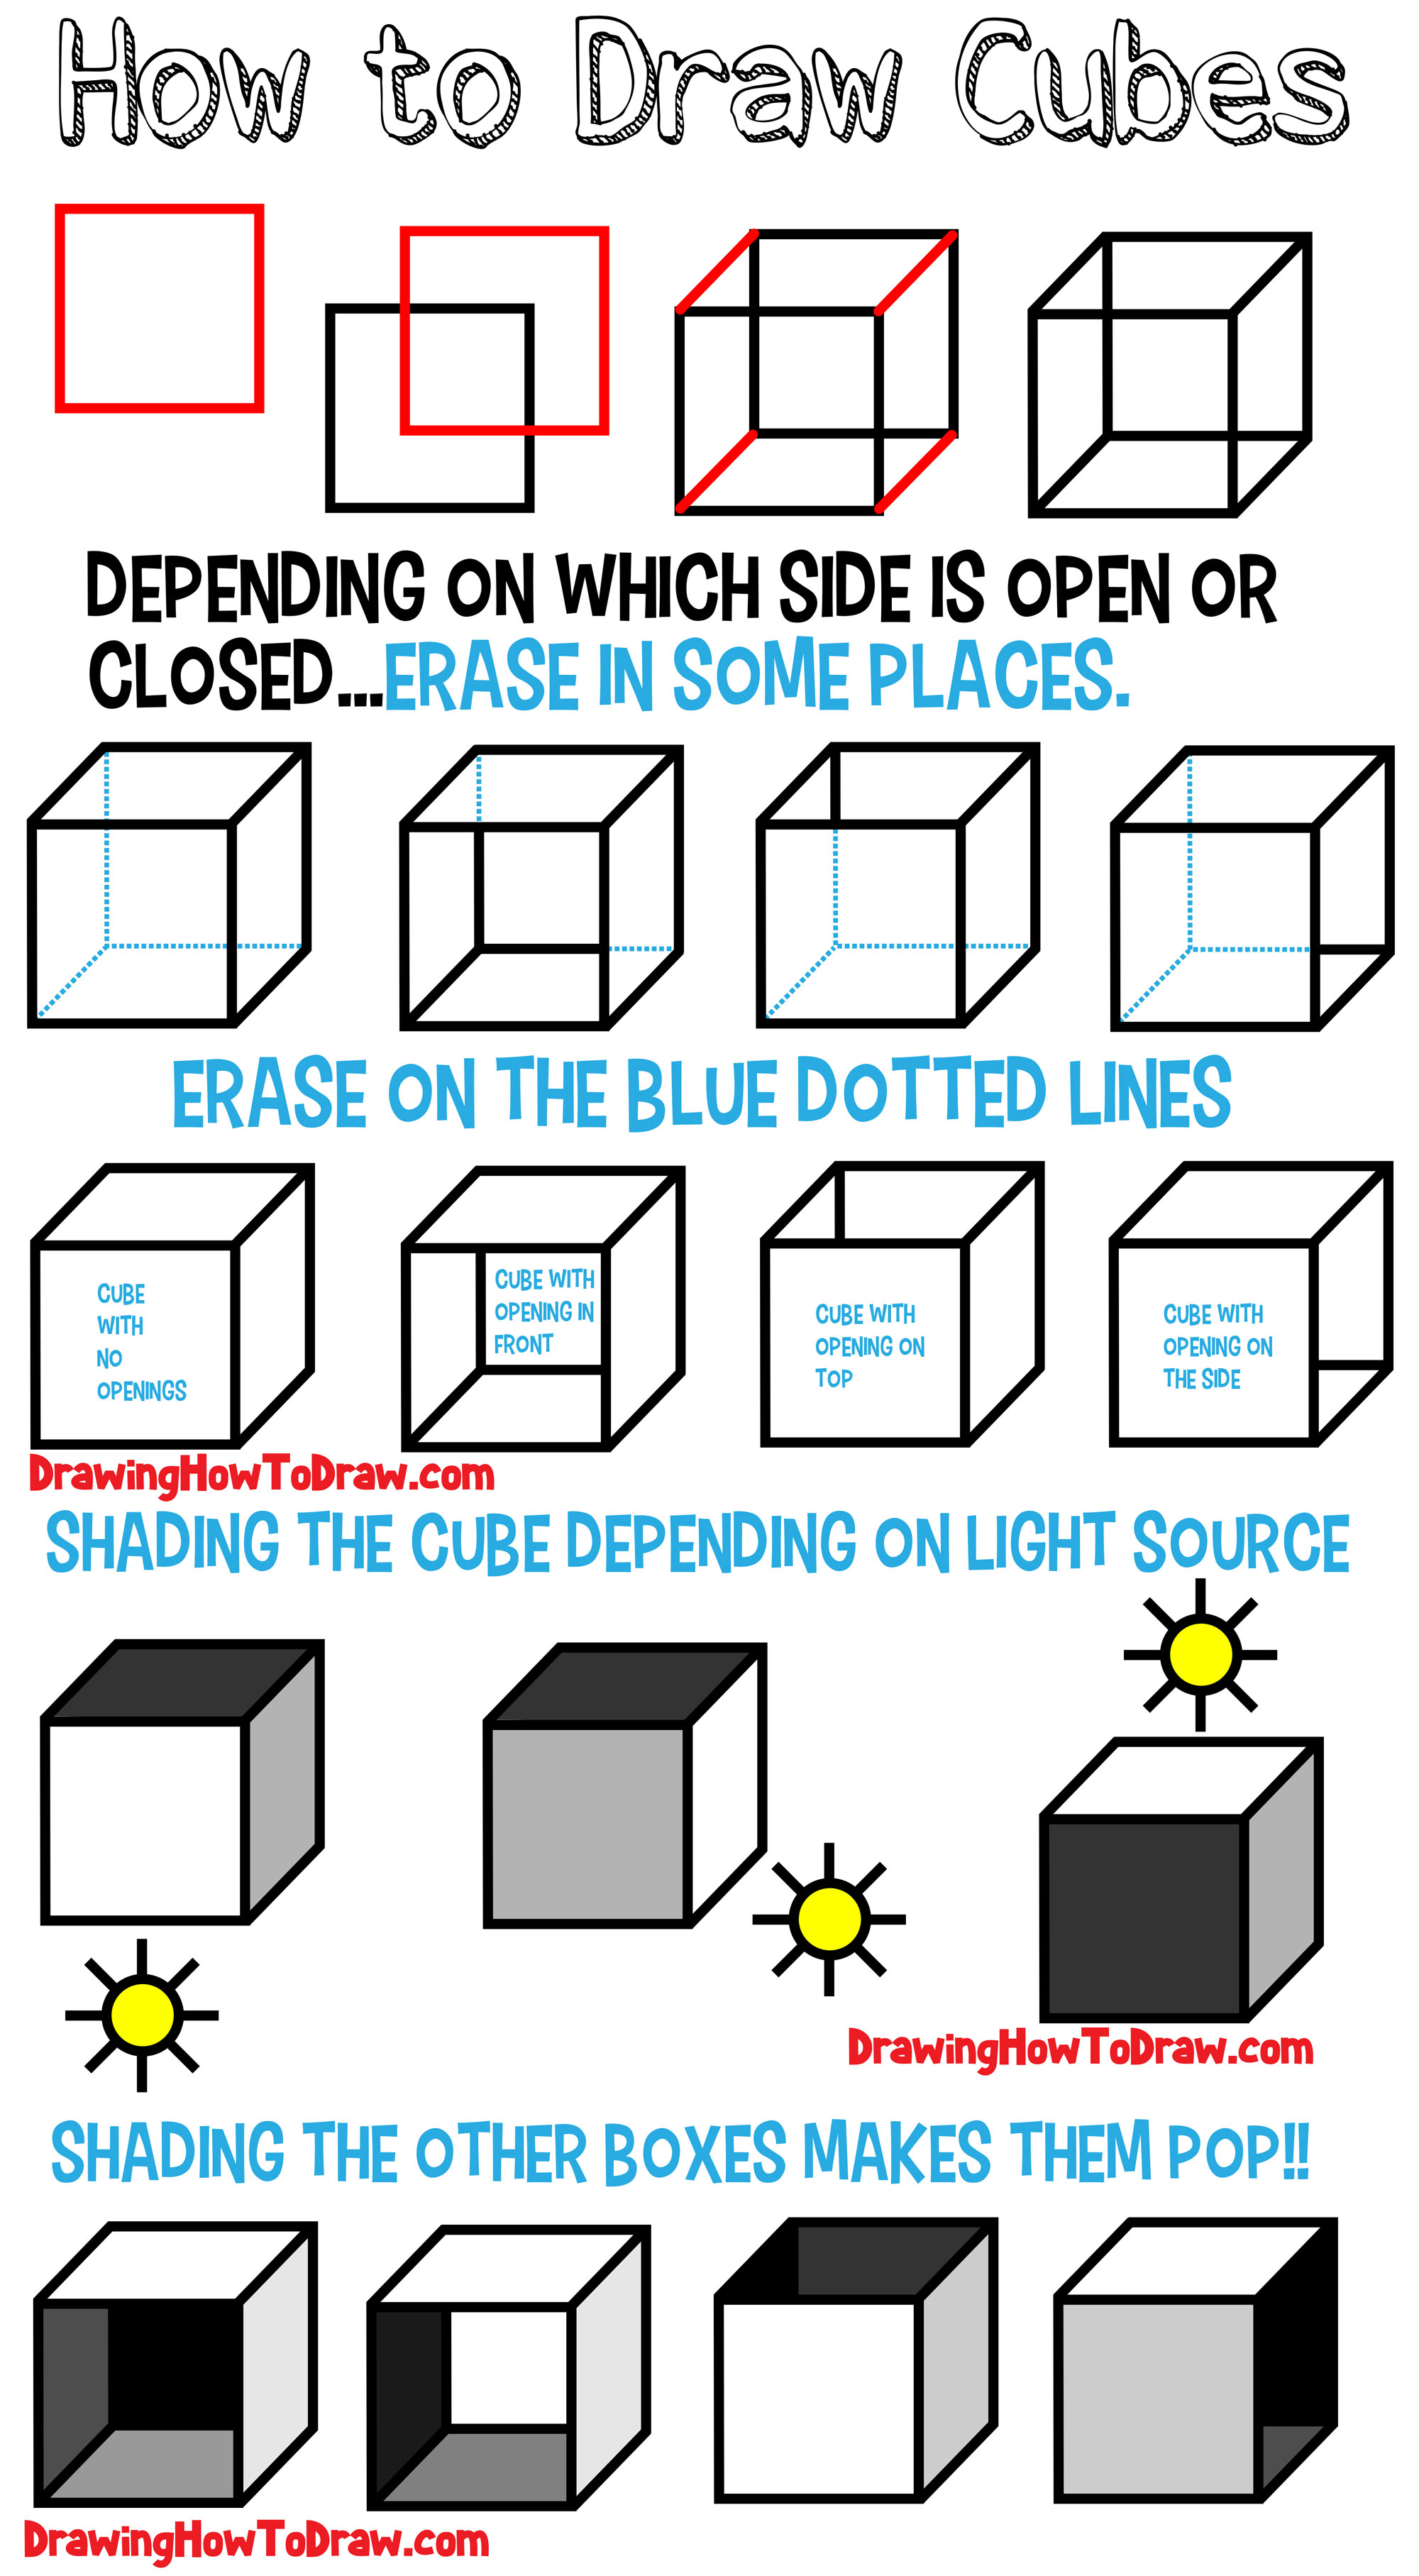 Learn How to Draw a Cube (Shading & Drawing Cubes and Boxes from Different Angles) Step by Step Tutorial